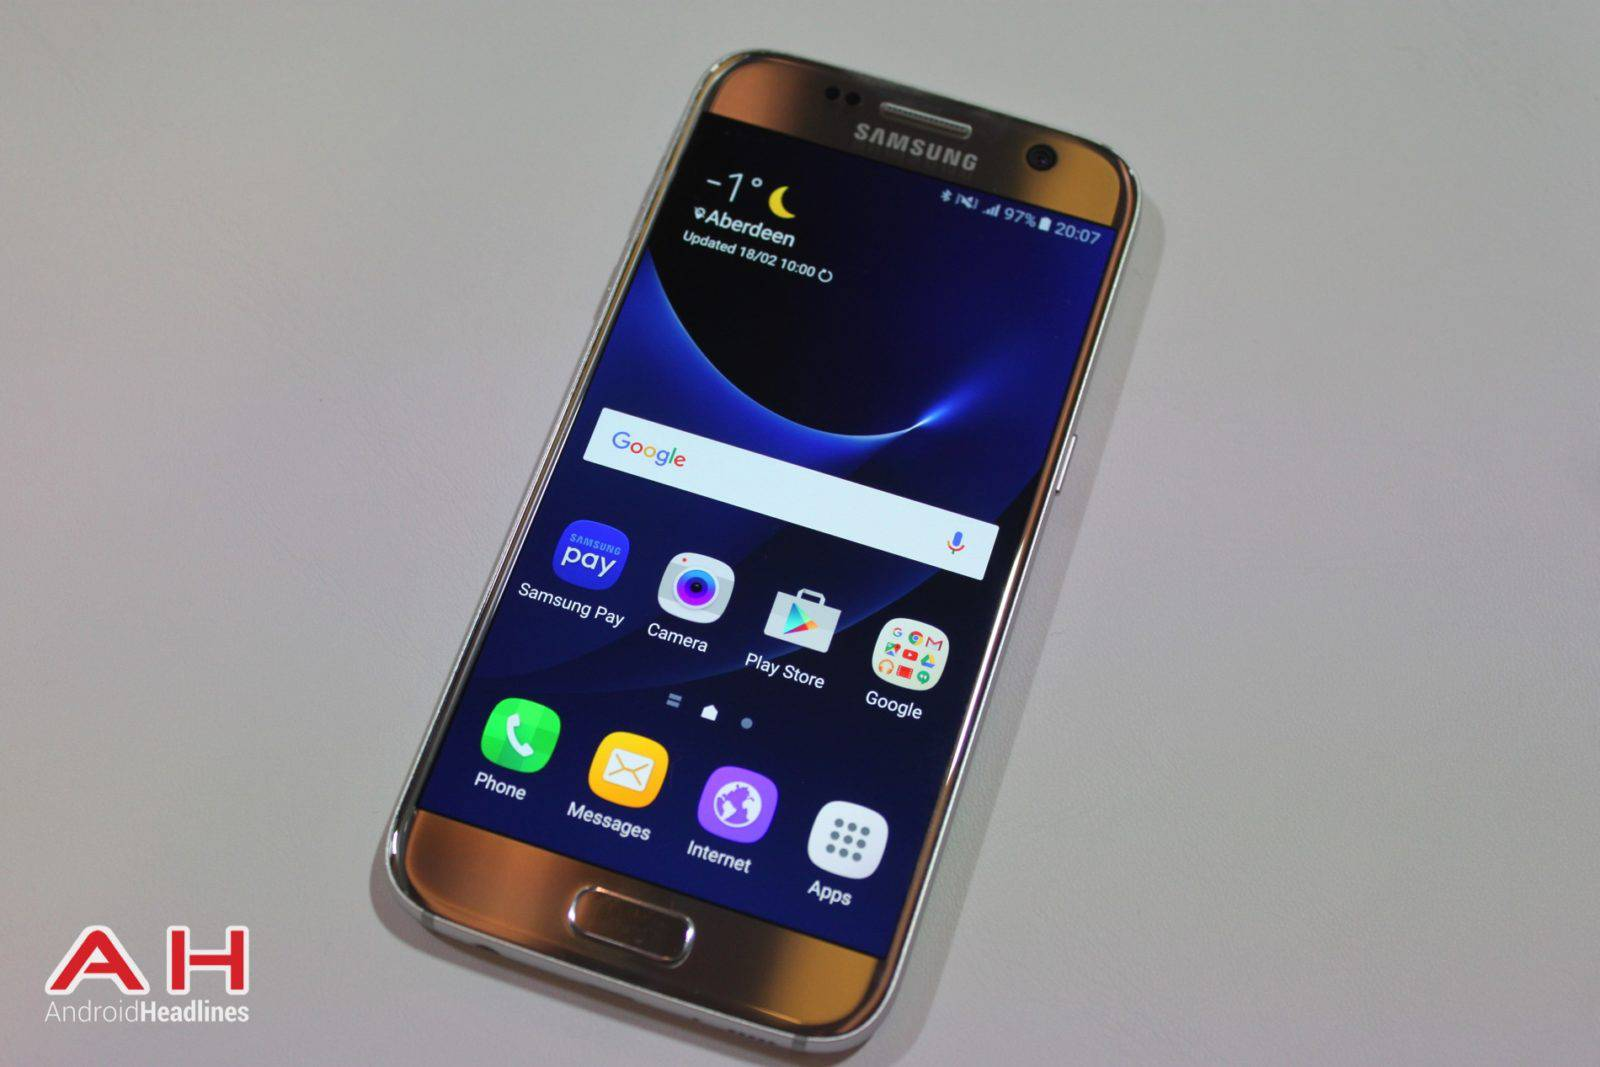 Samsung galaxy s7 has feature to show all apps on home screen